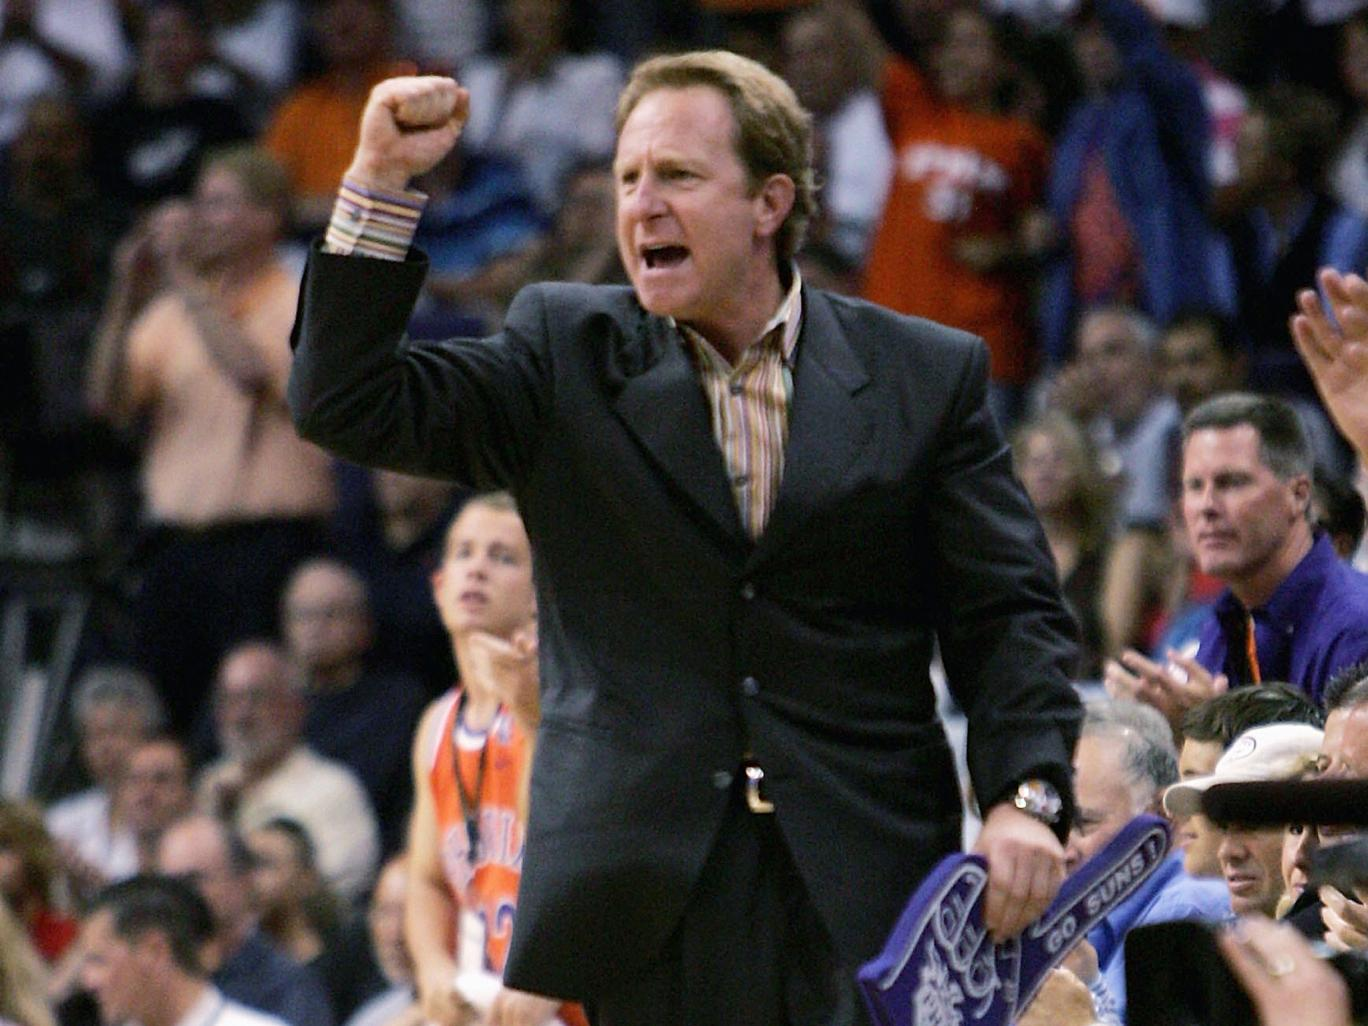 Suns owner Robert Sarver threatens to move team